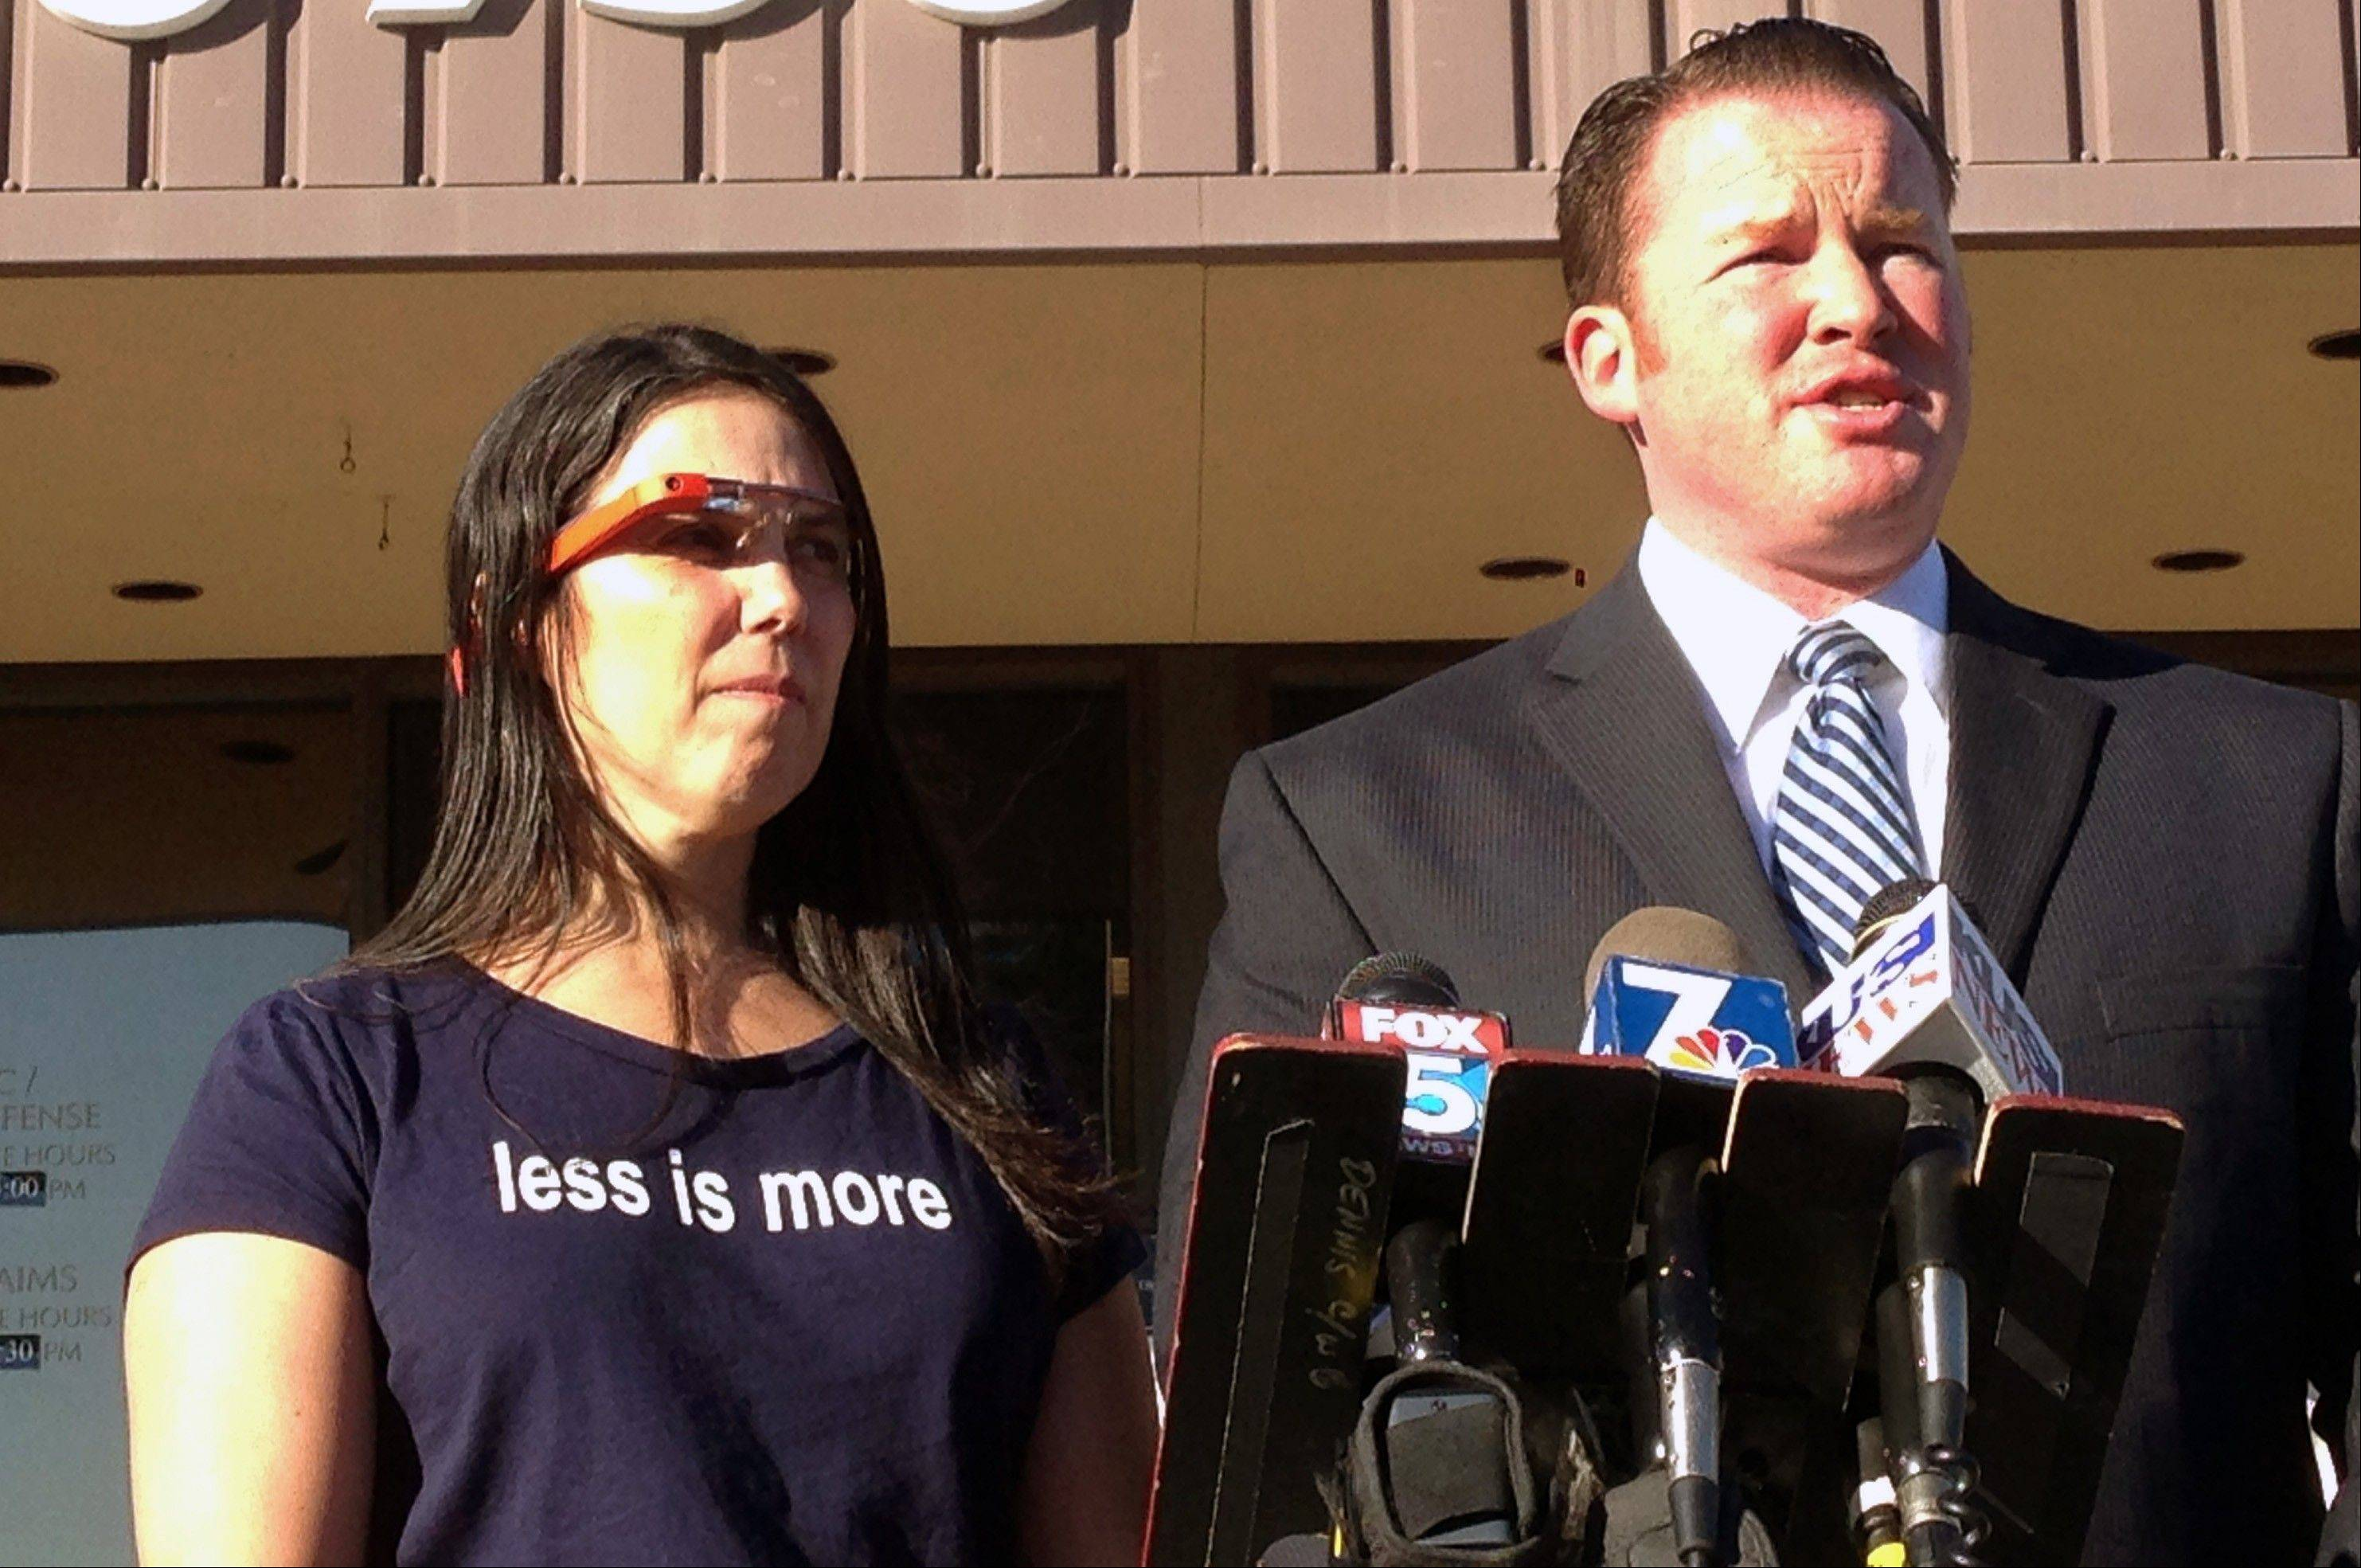 Cecilia Abadie, left, wears a Google Glass computer-in-eyeglass device while her attorney, William Concidine, speaks to the media, Thursday, Jan. 16, 2014 in San Diego. A San Diego traffic court threw out a citation Thursday against Abadie, a woman believed to be the first motorist in the country ticketed for driving while wearing a Google Glass computer-in-eyeglass device.